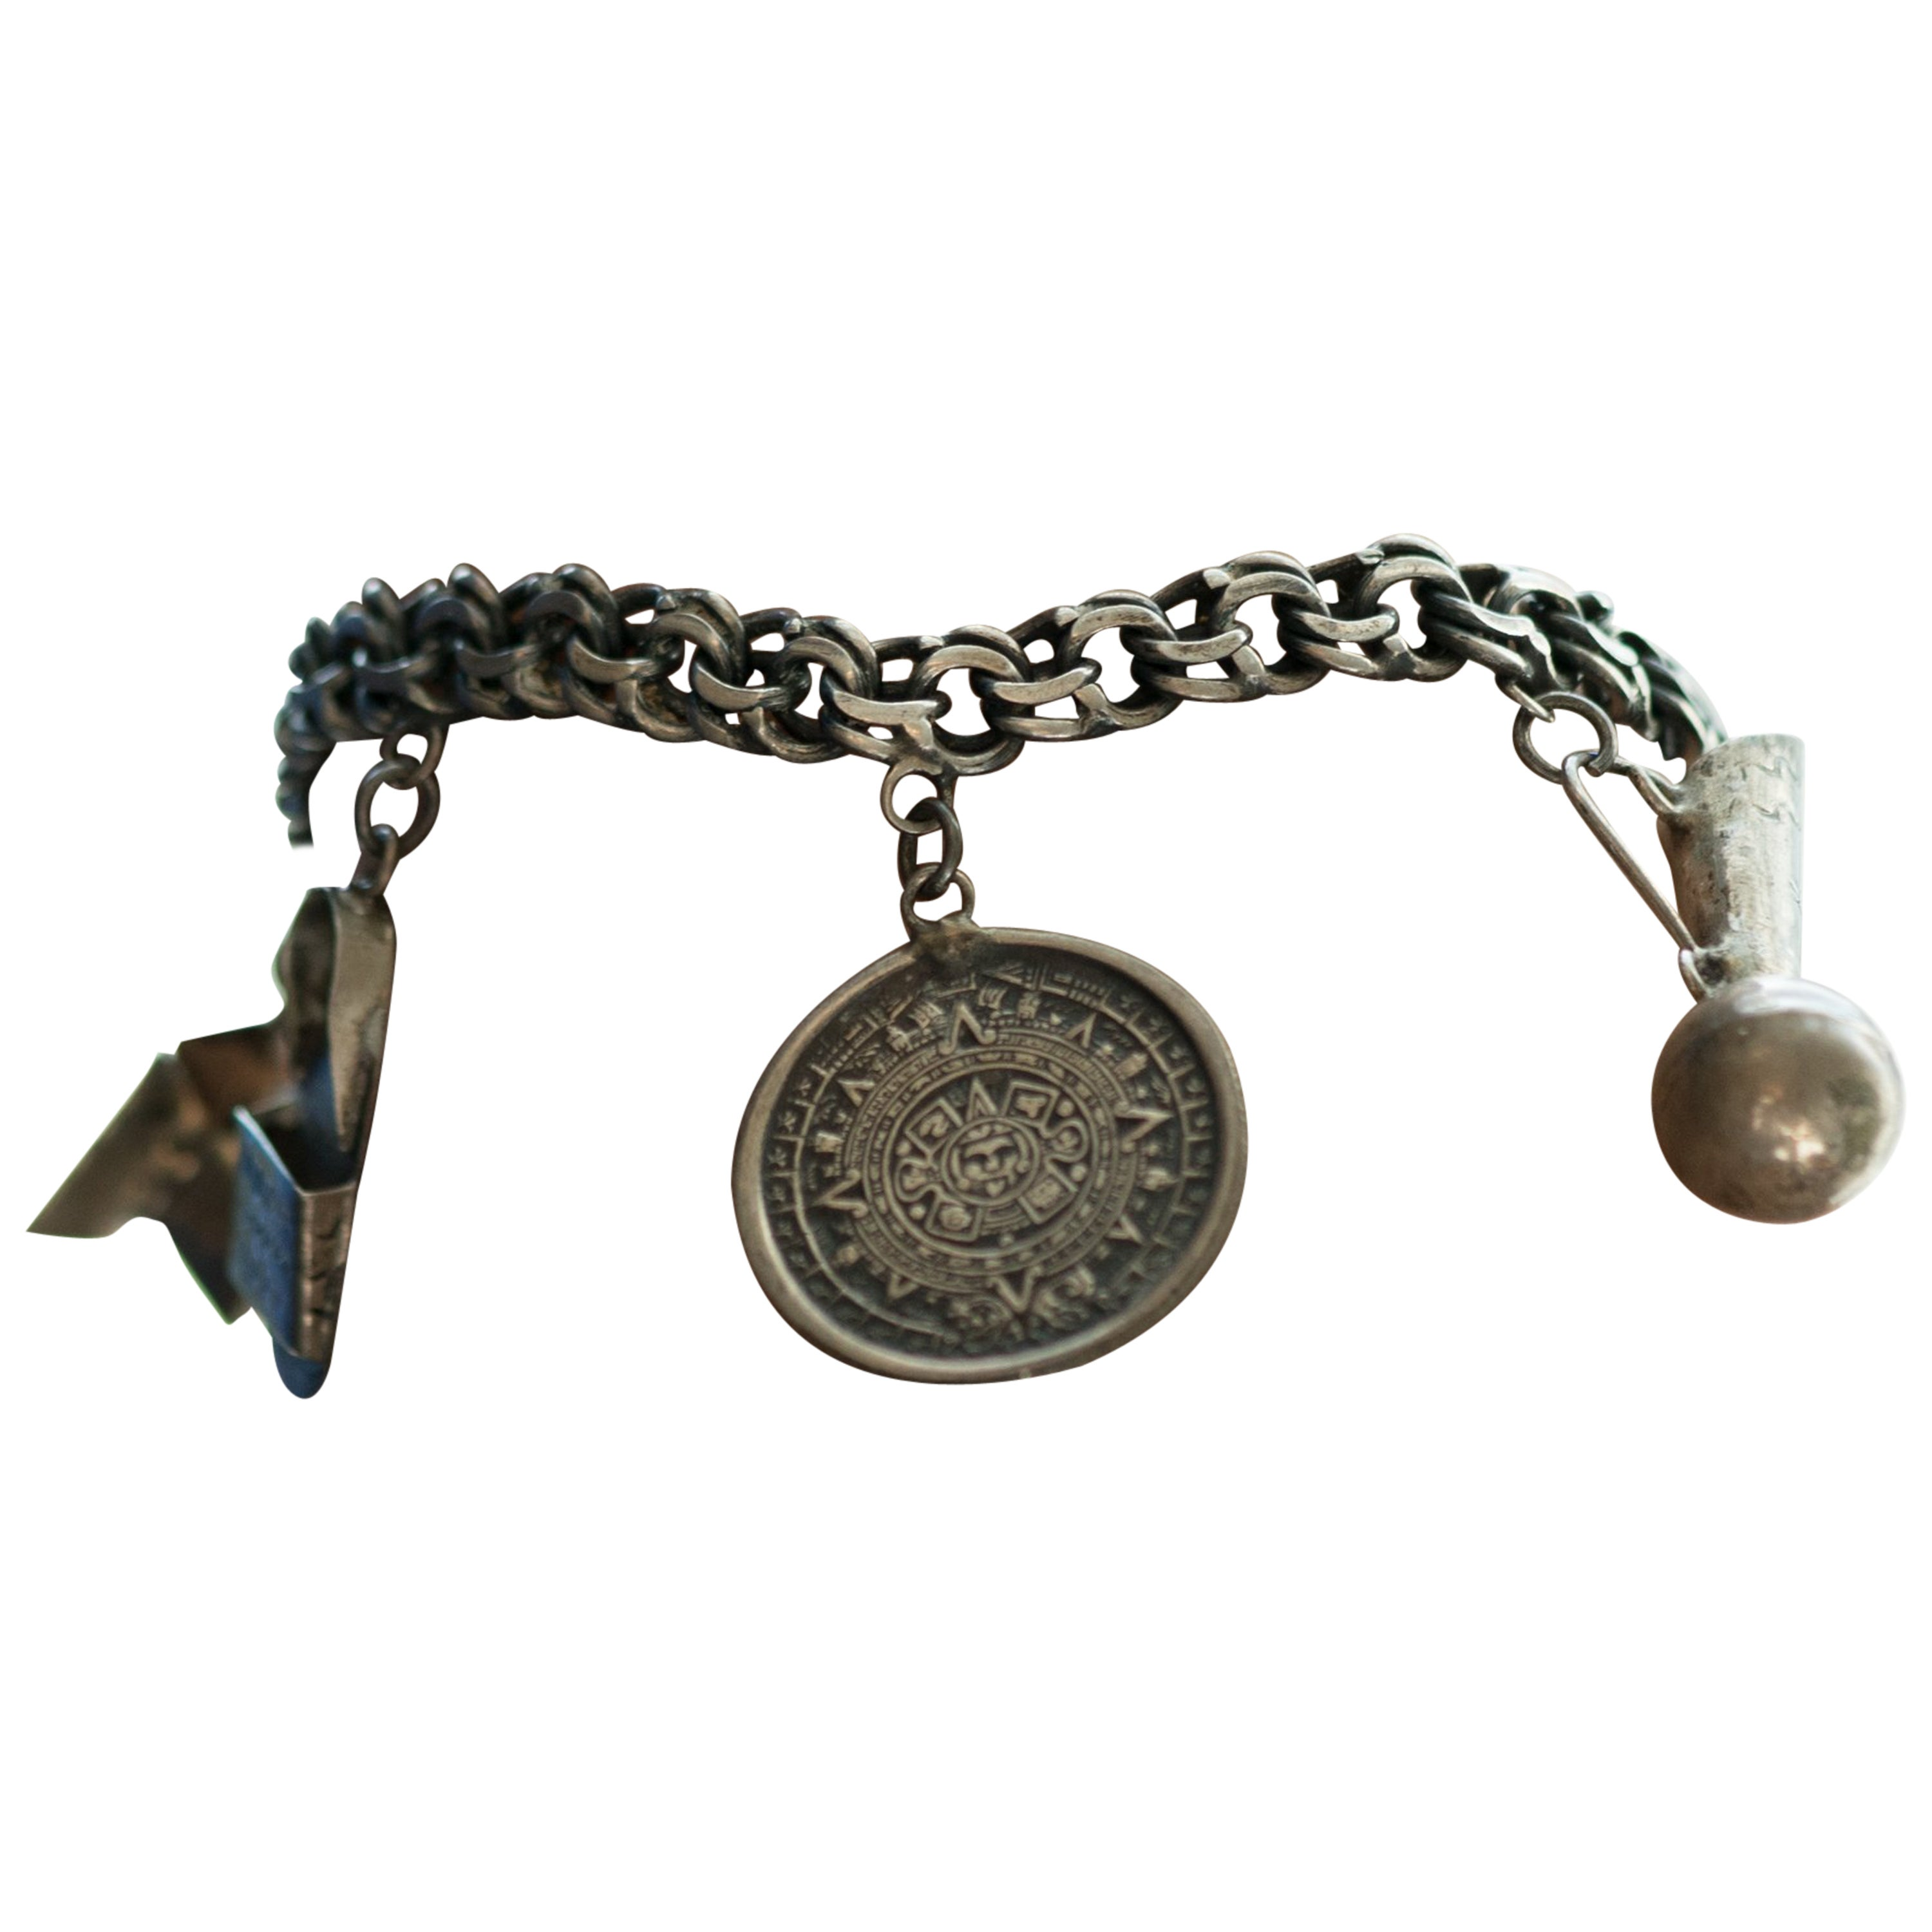 1940s Sterling Silver Mexican Charm Bracelet